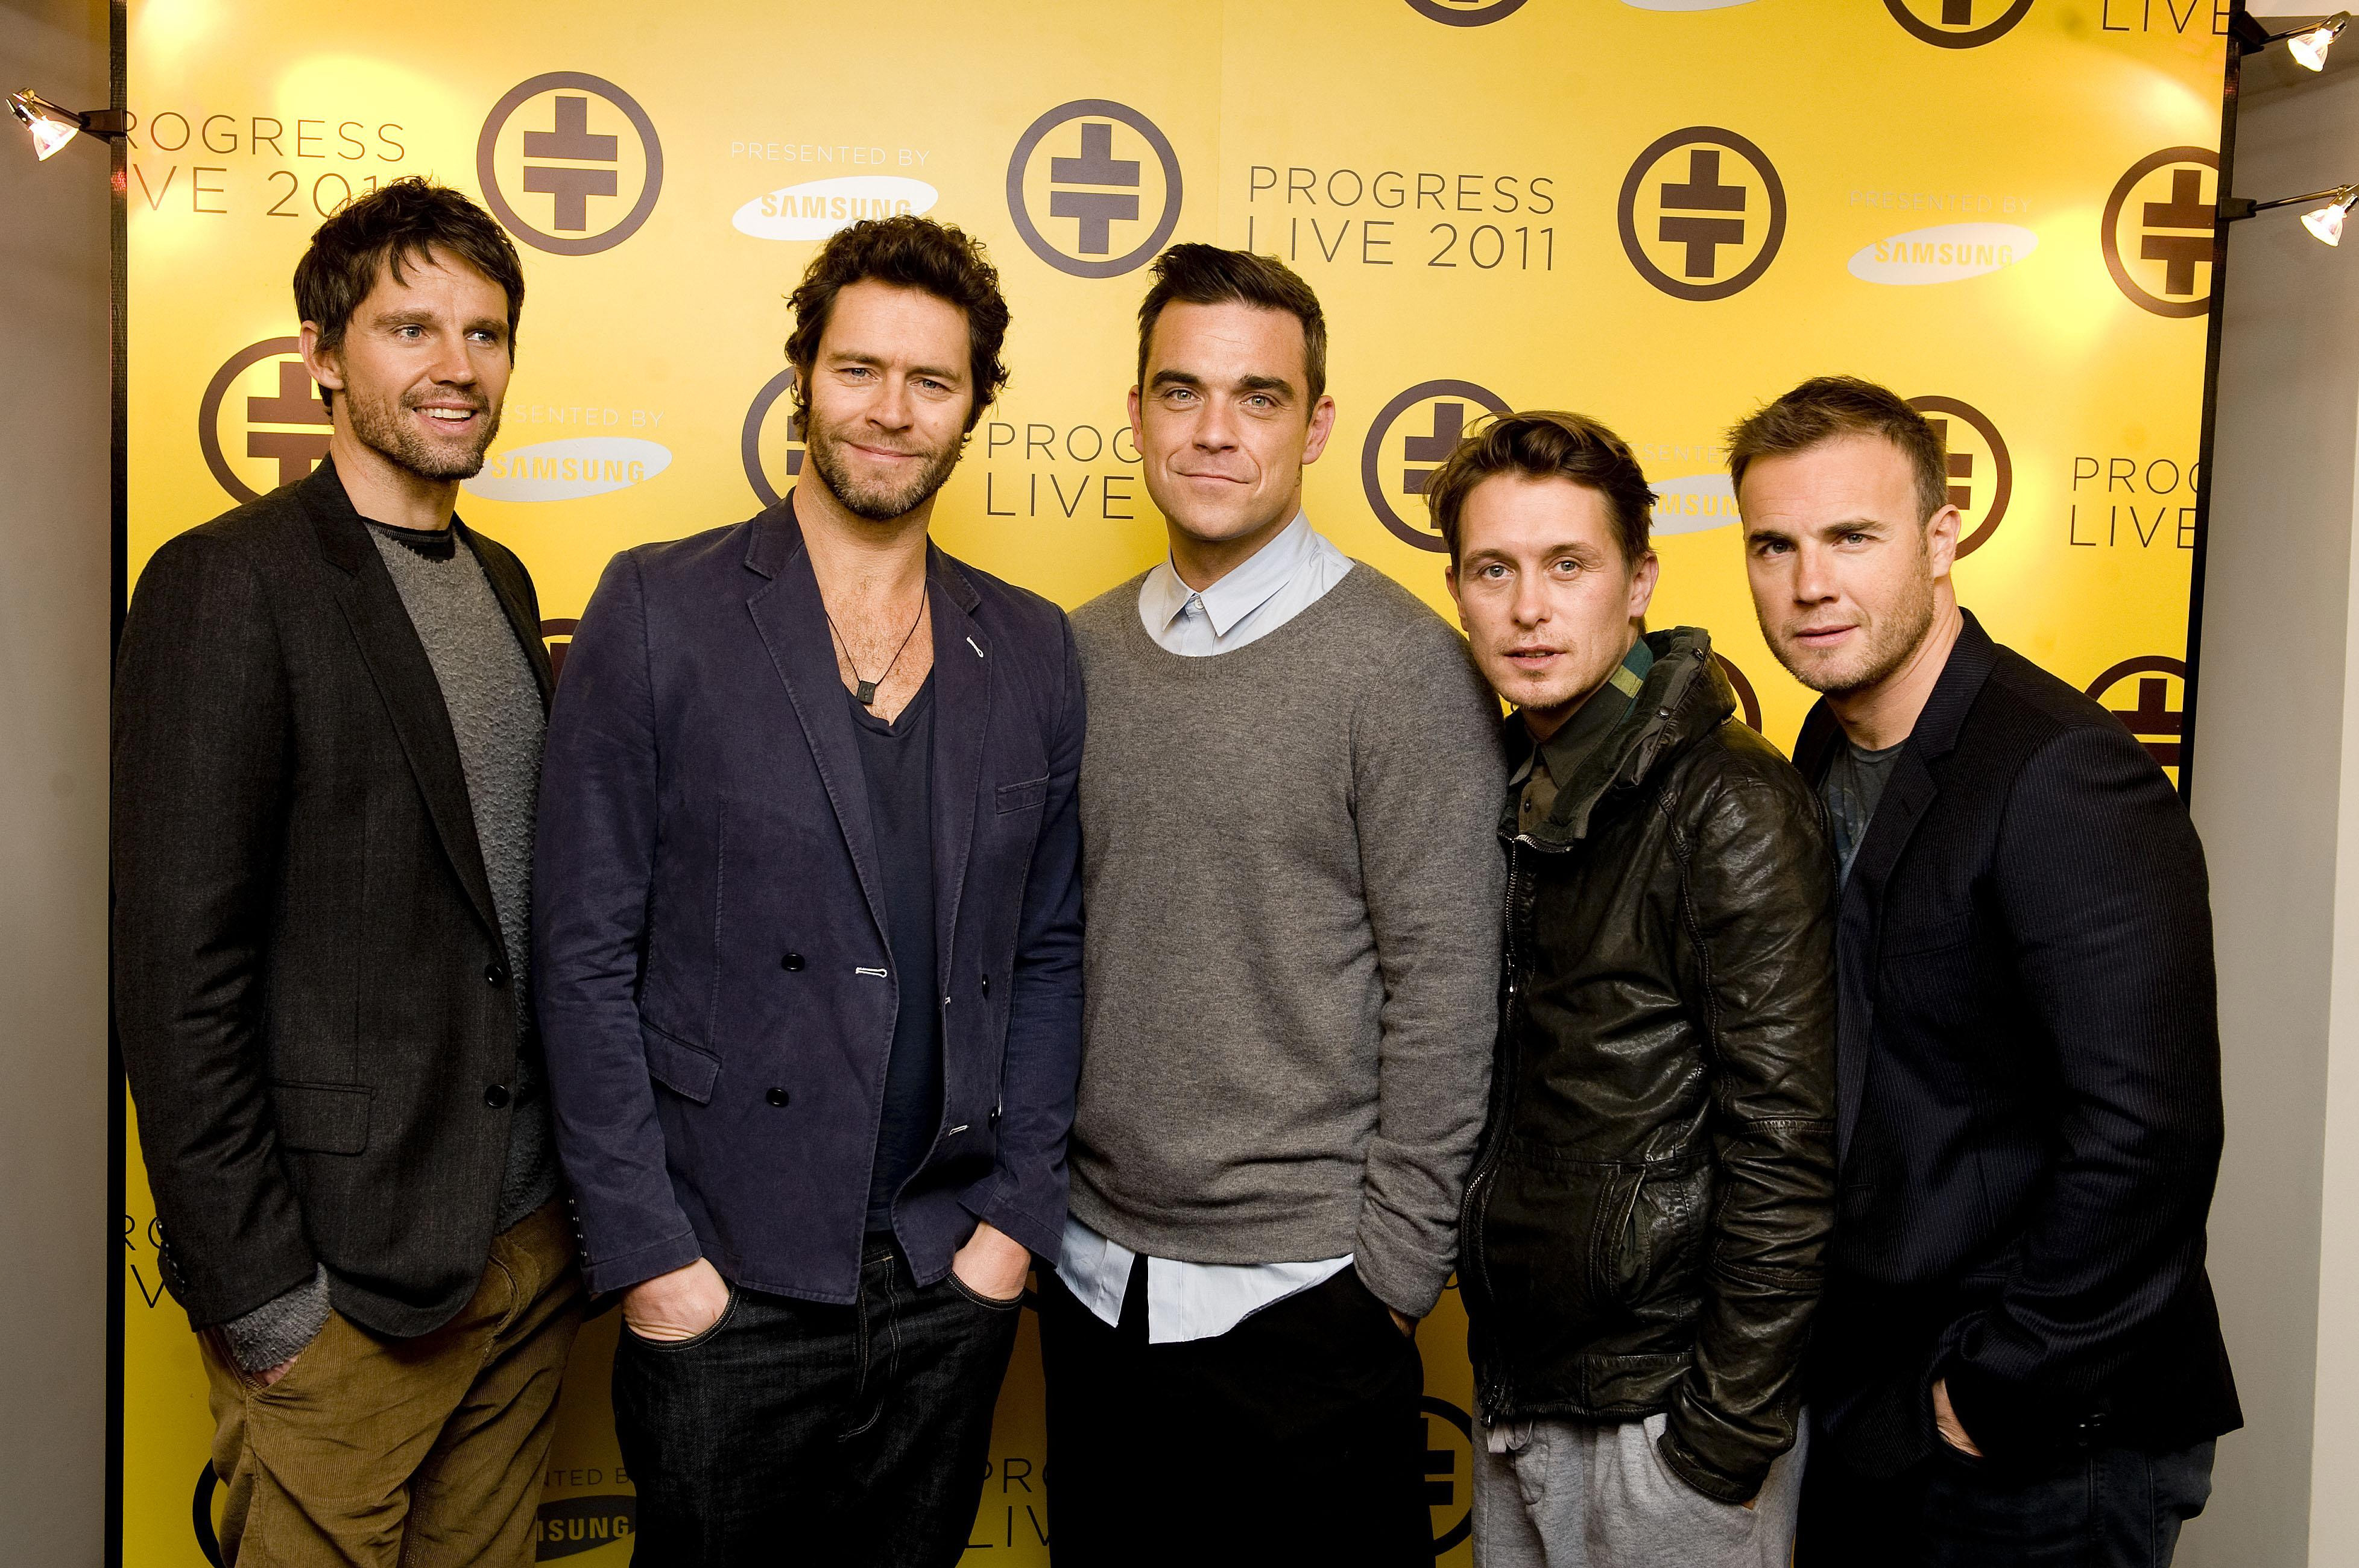 (From the left) Jason Orange, Howard Donald, Robbie Williams, Mark Owen and Gary Barlow of Take That during a photocall in London, where they announced their first tour as a complete group in 16 years.